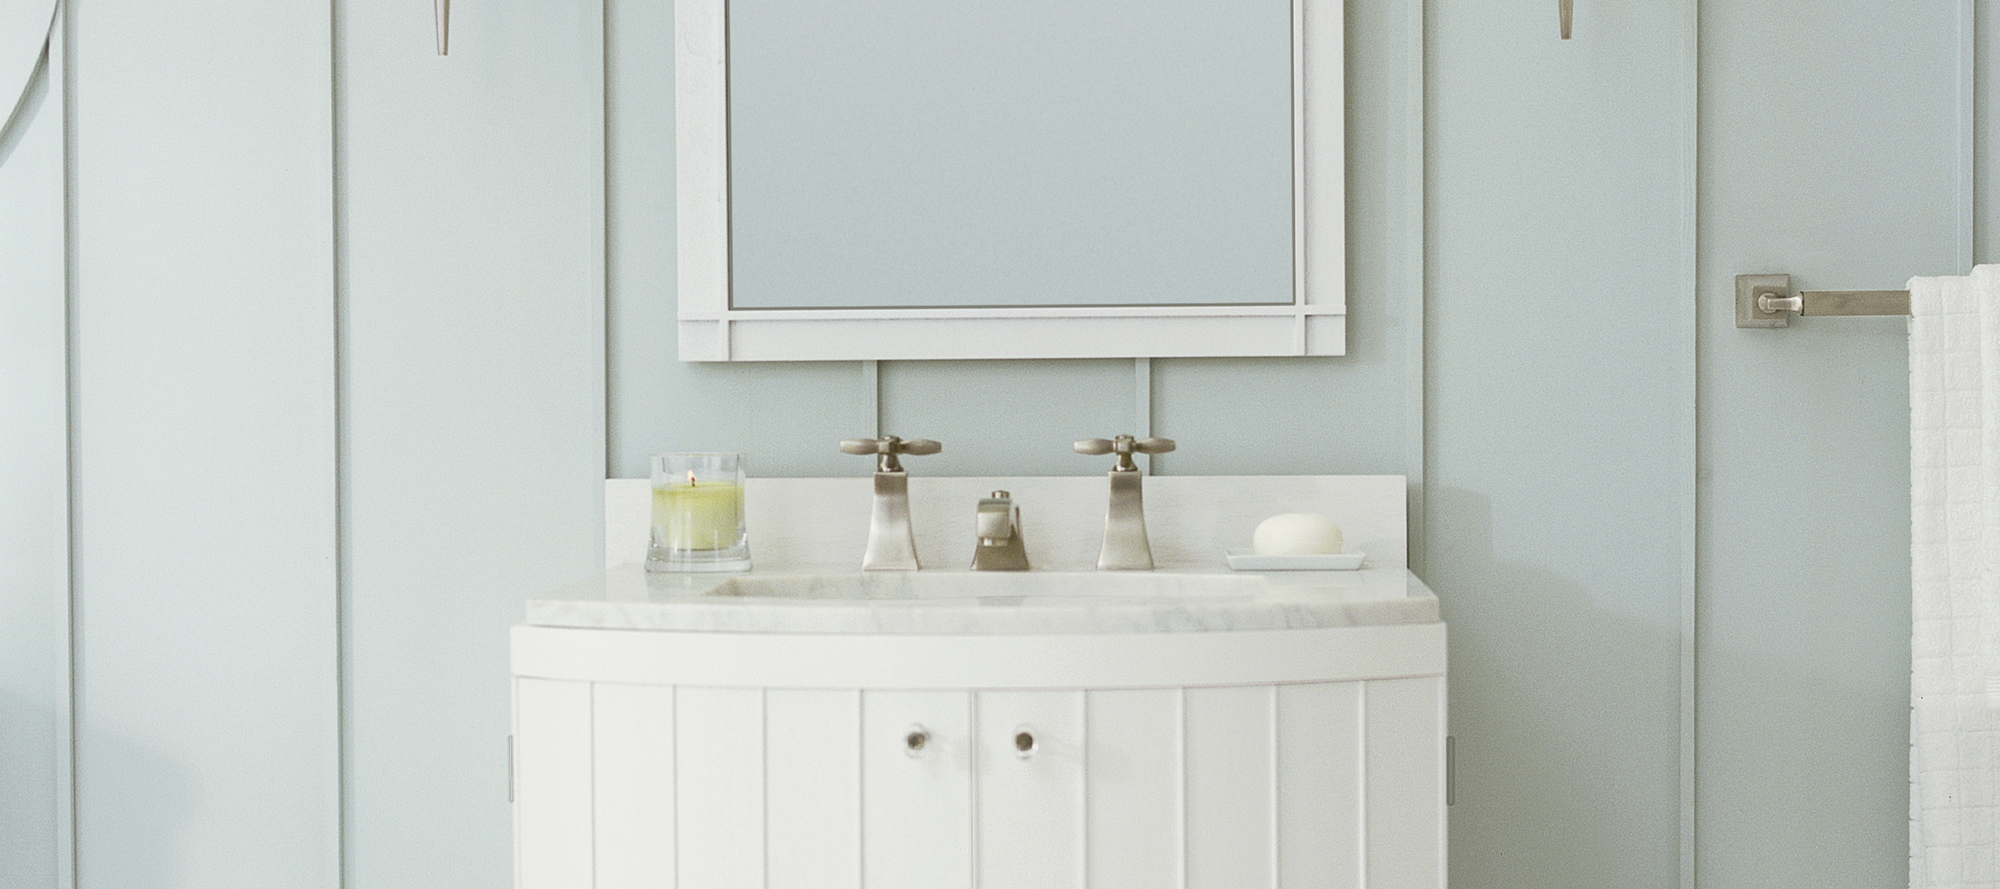 Cool Paint Bathtub Thin Painting A Bathtub Square Paint For Bathtub Bath Tub Paint Young Painting Bathtub Gray Paint Tub